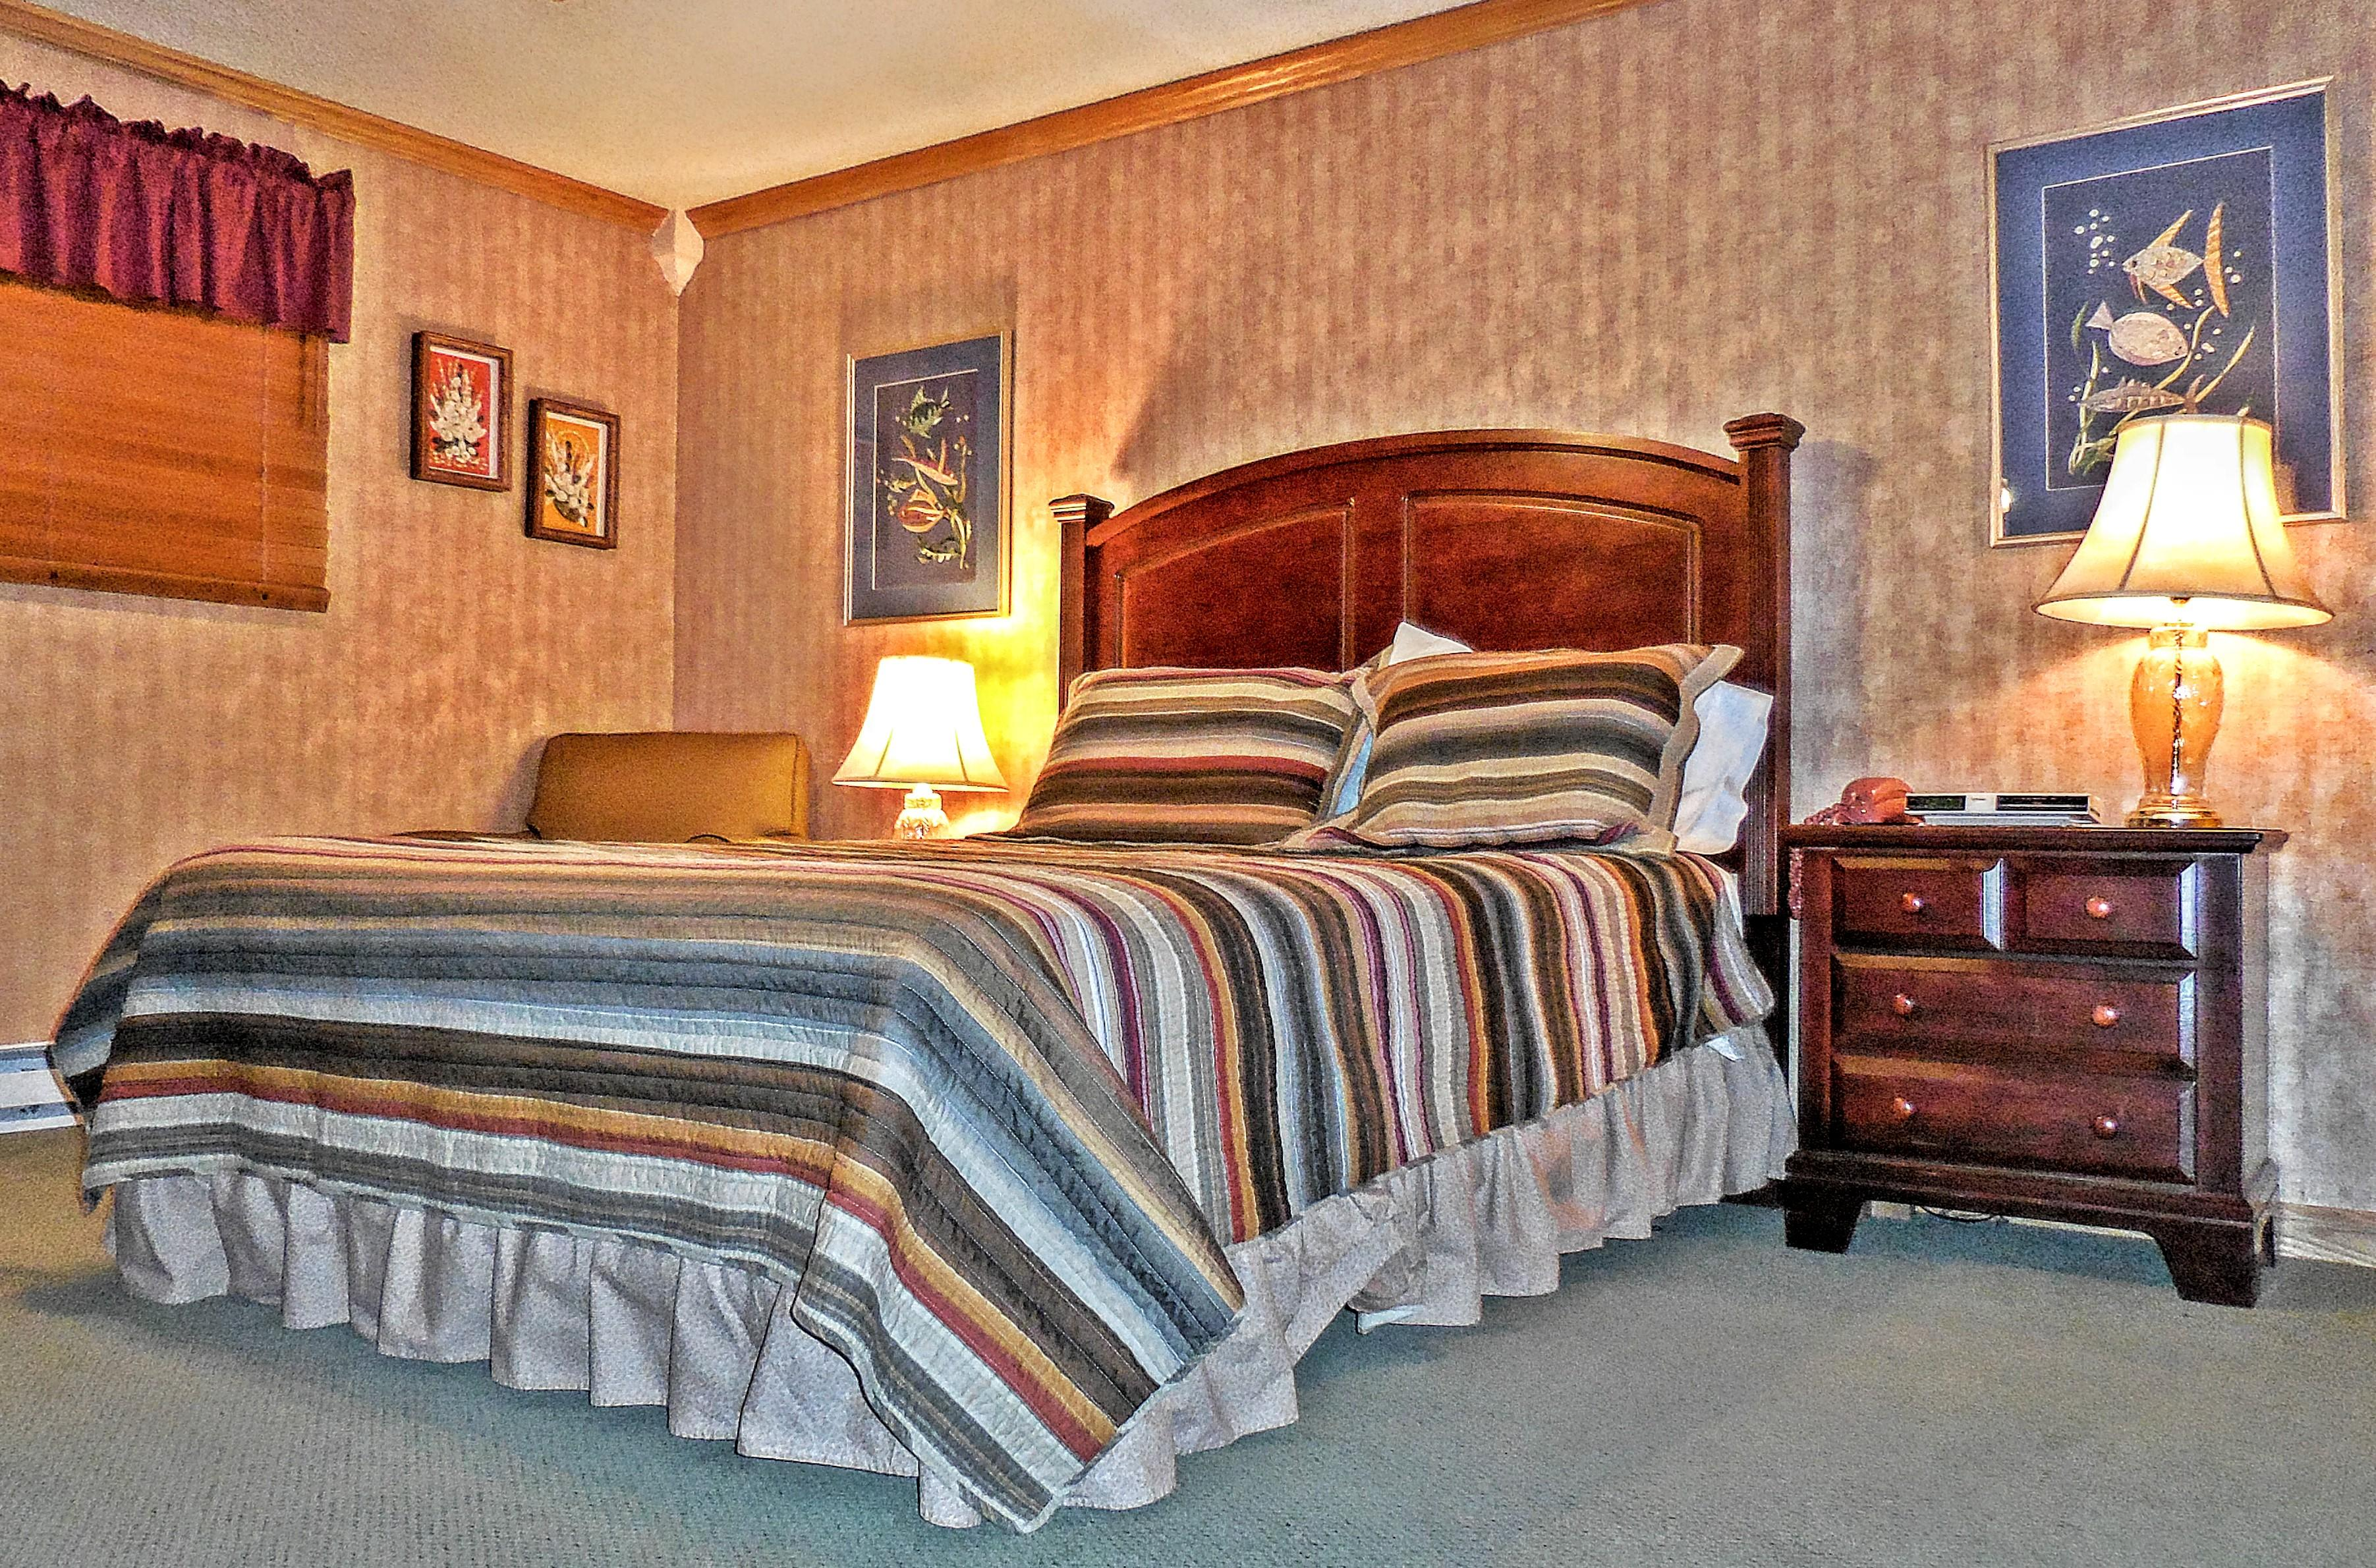 Master bedroom w/ queen bed and private full bath